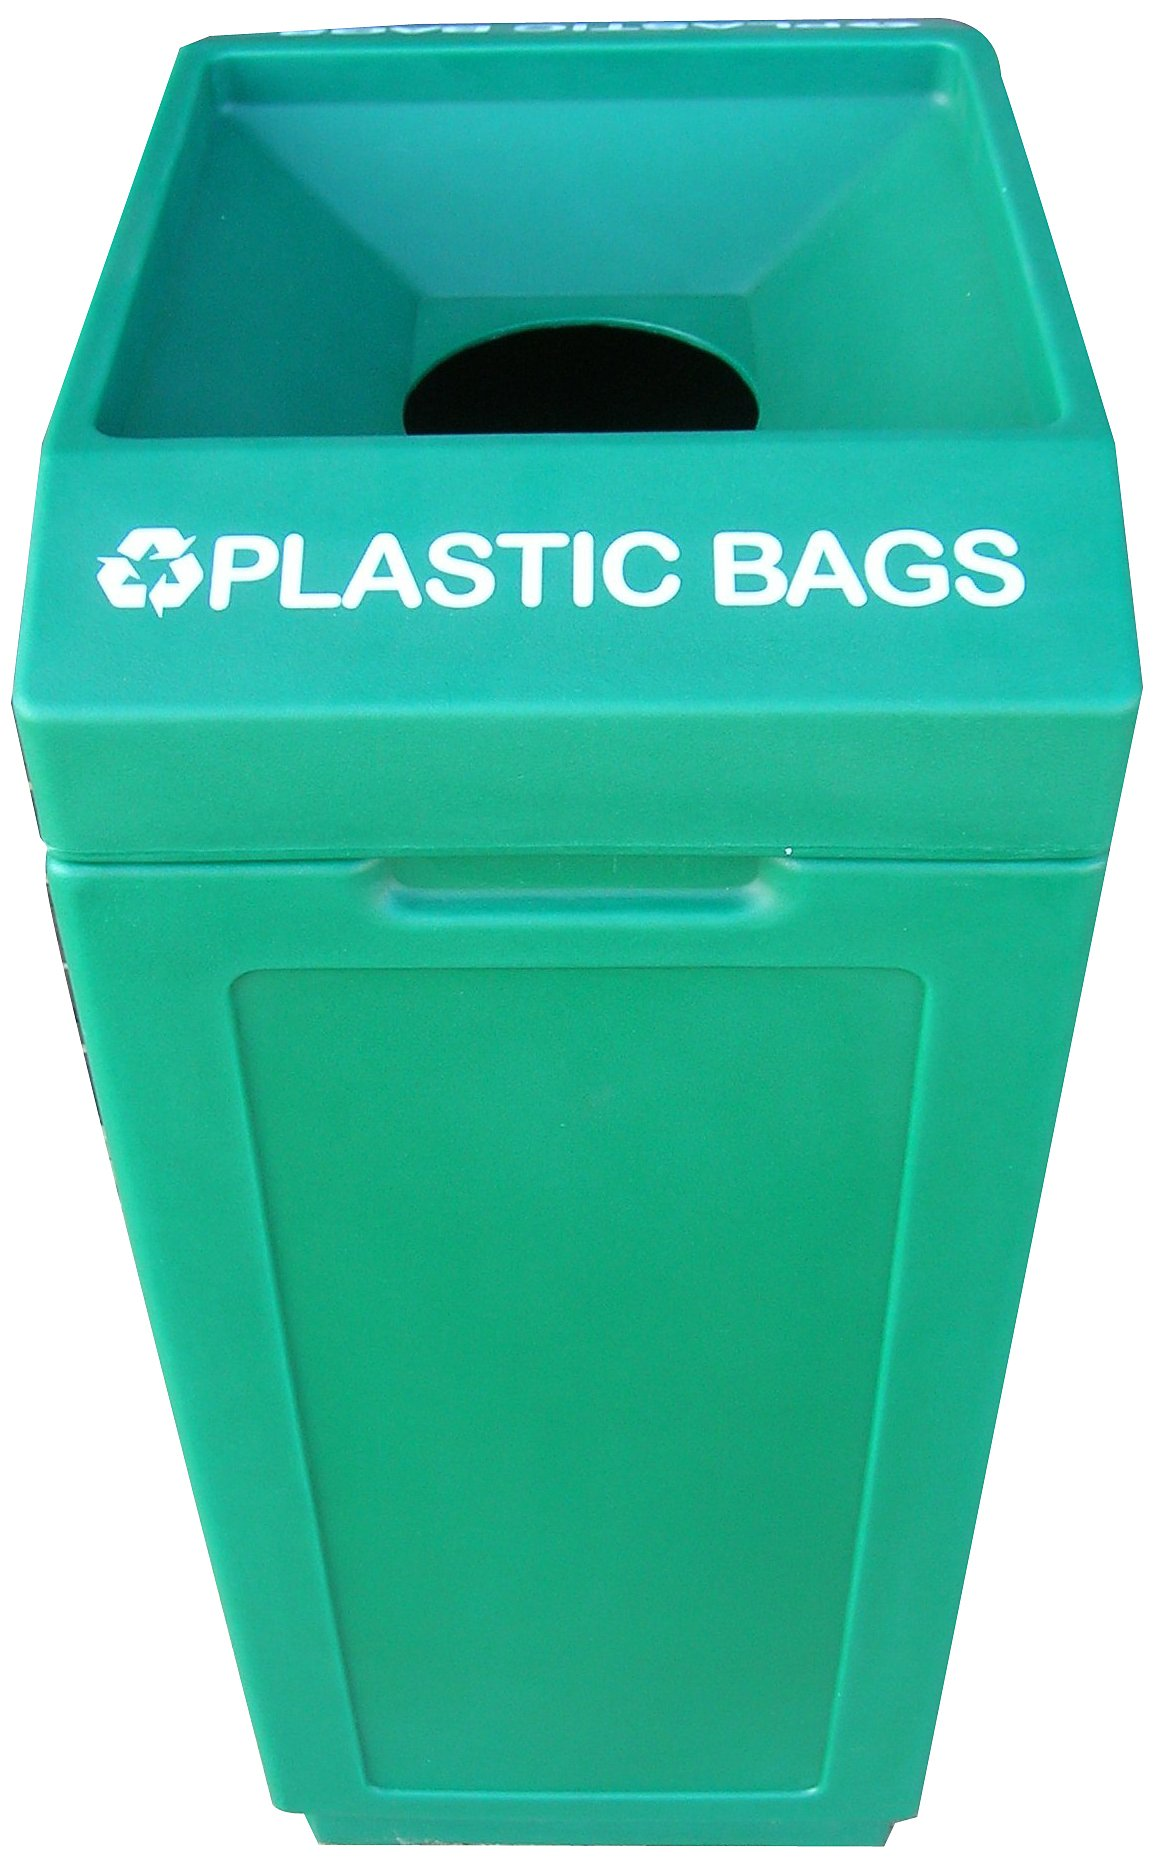 Forte Products 8002064 Open Top Plastic Recycle Bin with Plastic Bags Graphic, 14.5'' L x 21.5'' W x 36'' H, Green